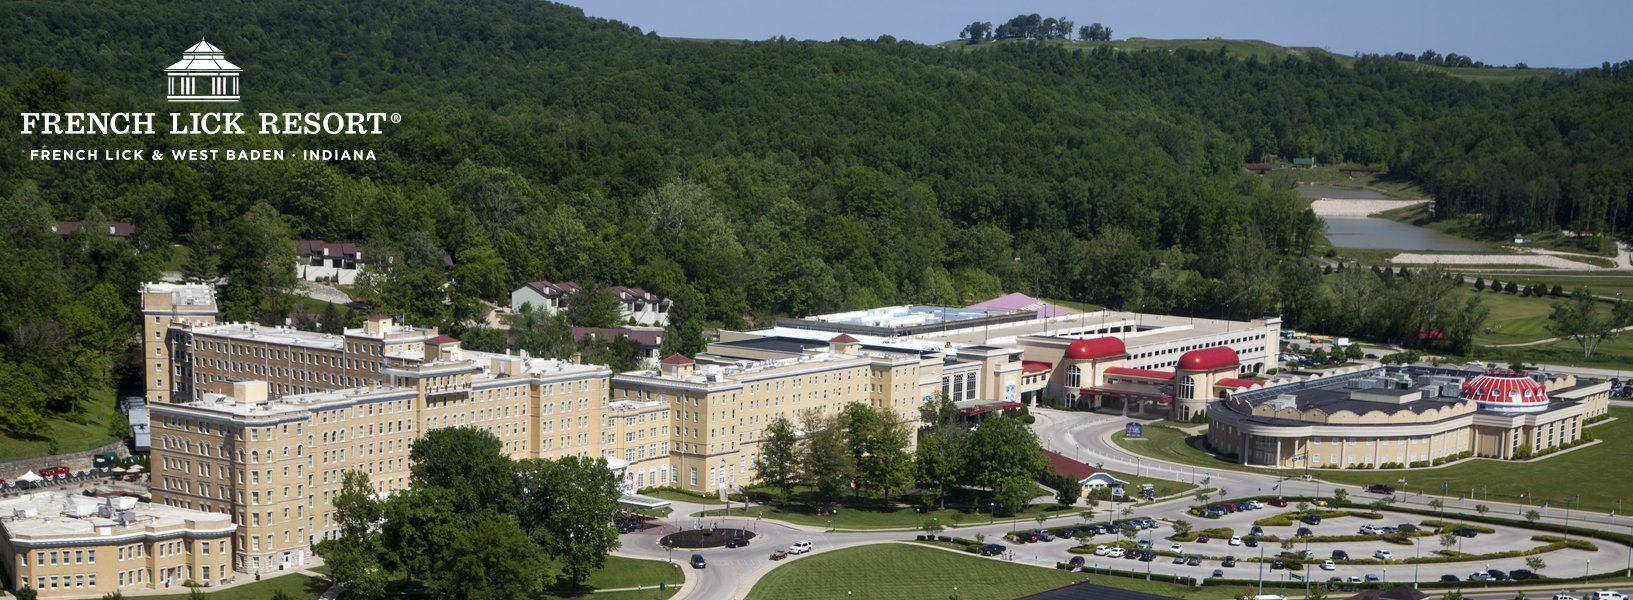 French lick resort hotel reservations